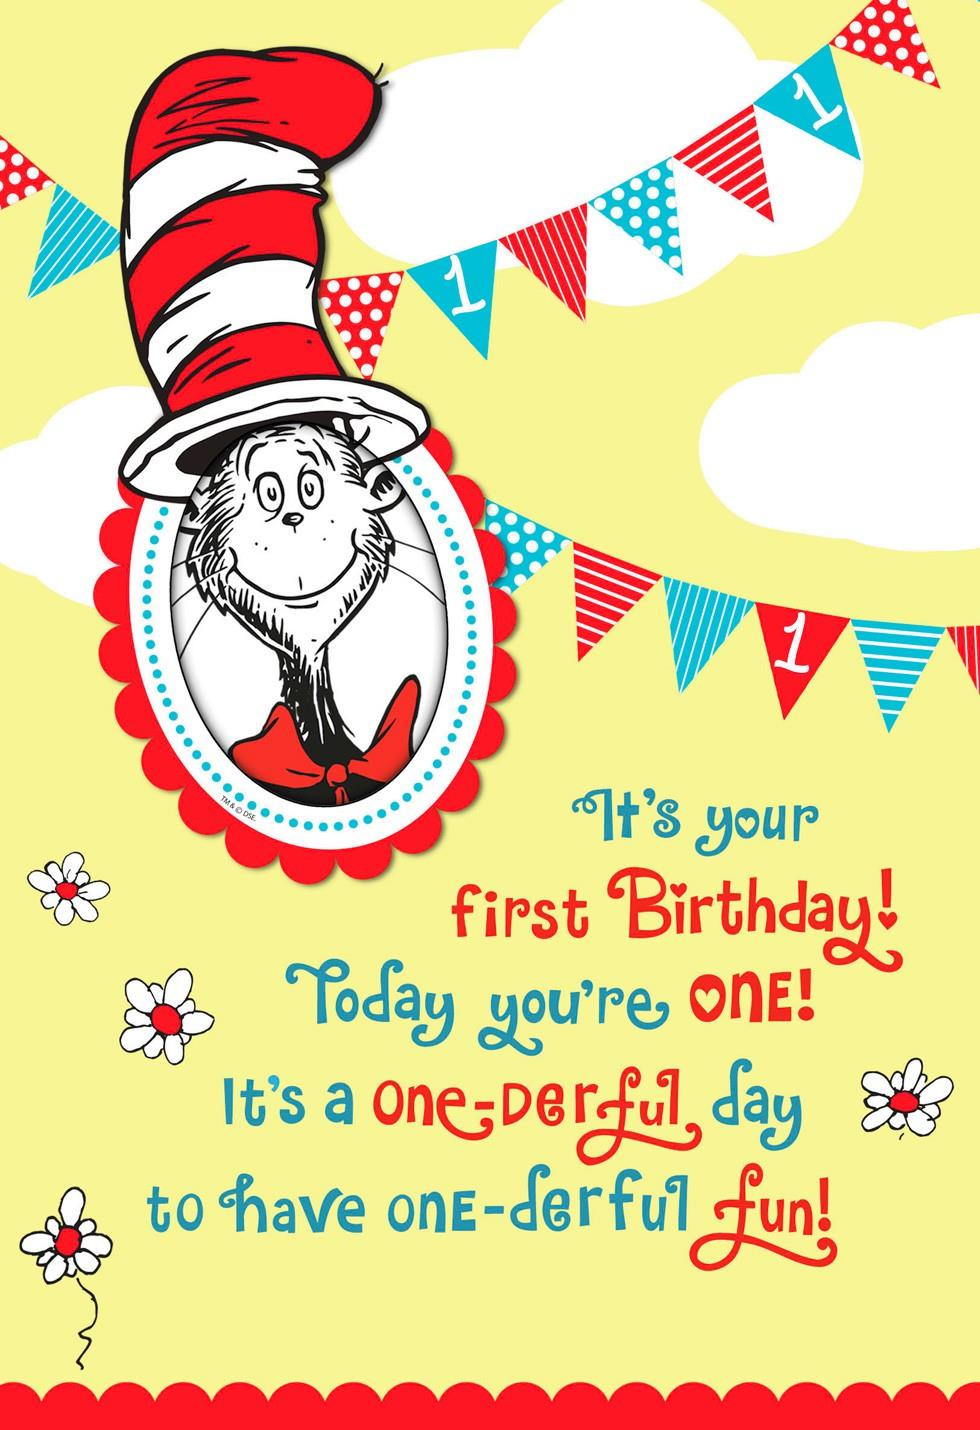 Dr Seuss Cat in the Hat 1st Birthday Card With Photo Holder